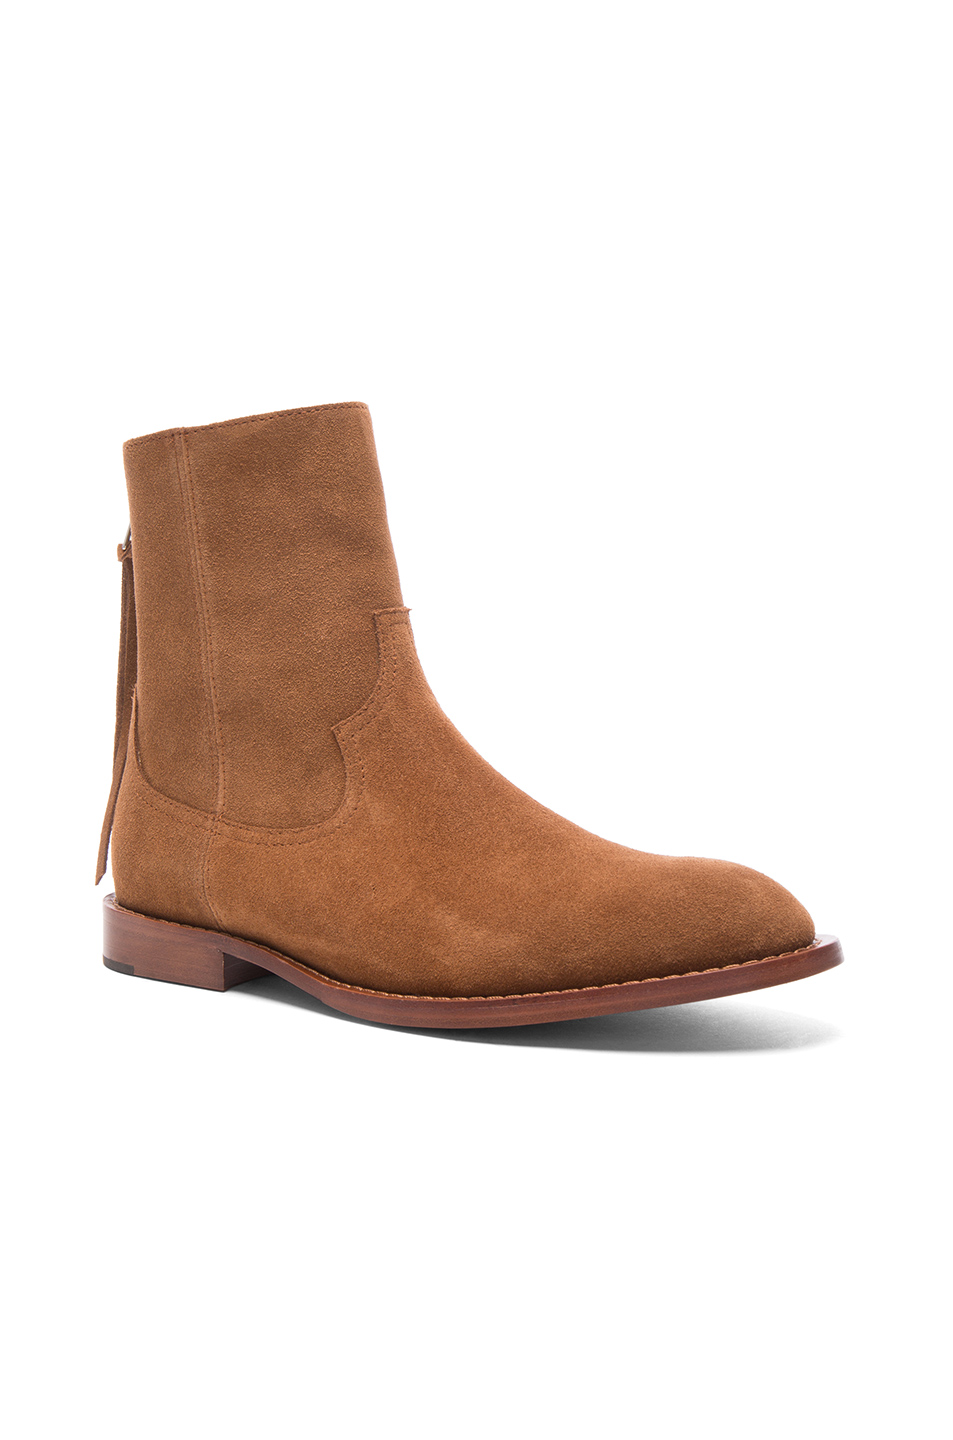 Amiri Suede Shane Boots in Brown